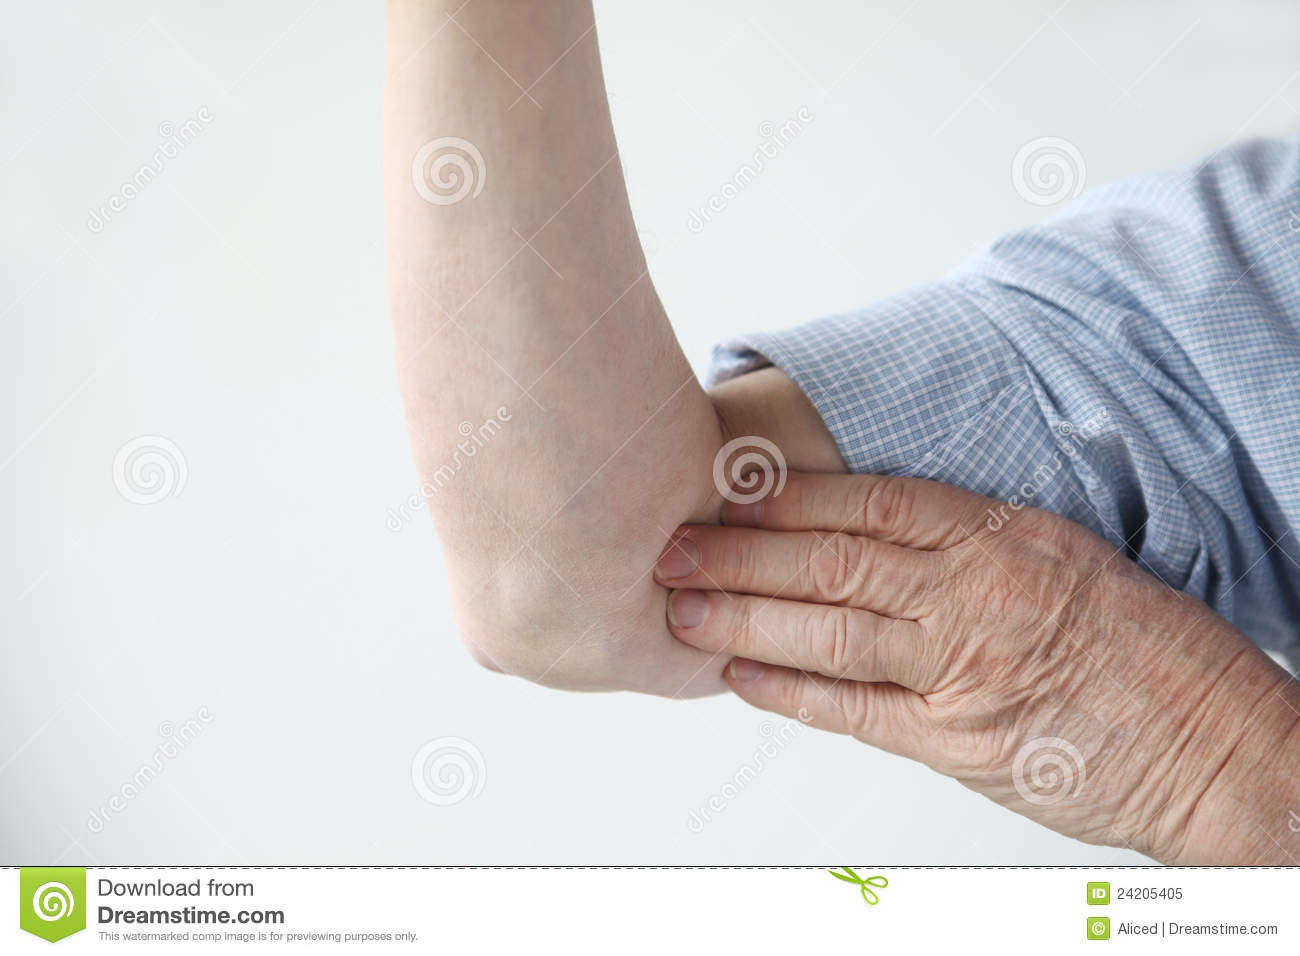 Pain in upper arm royalty free stock photo image 24205405